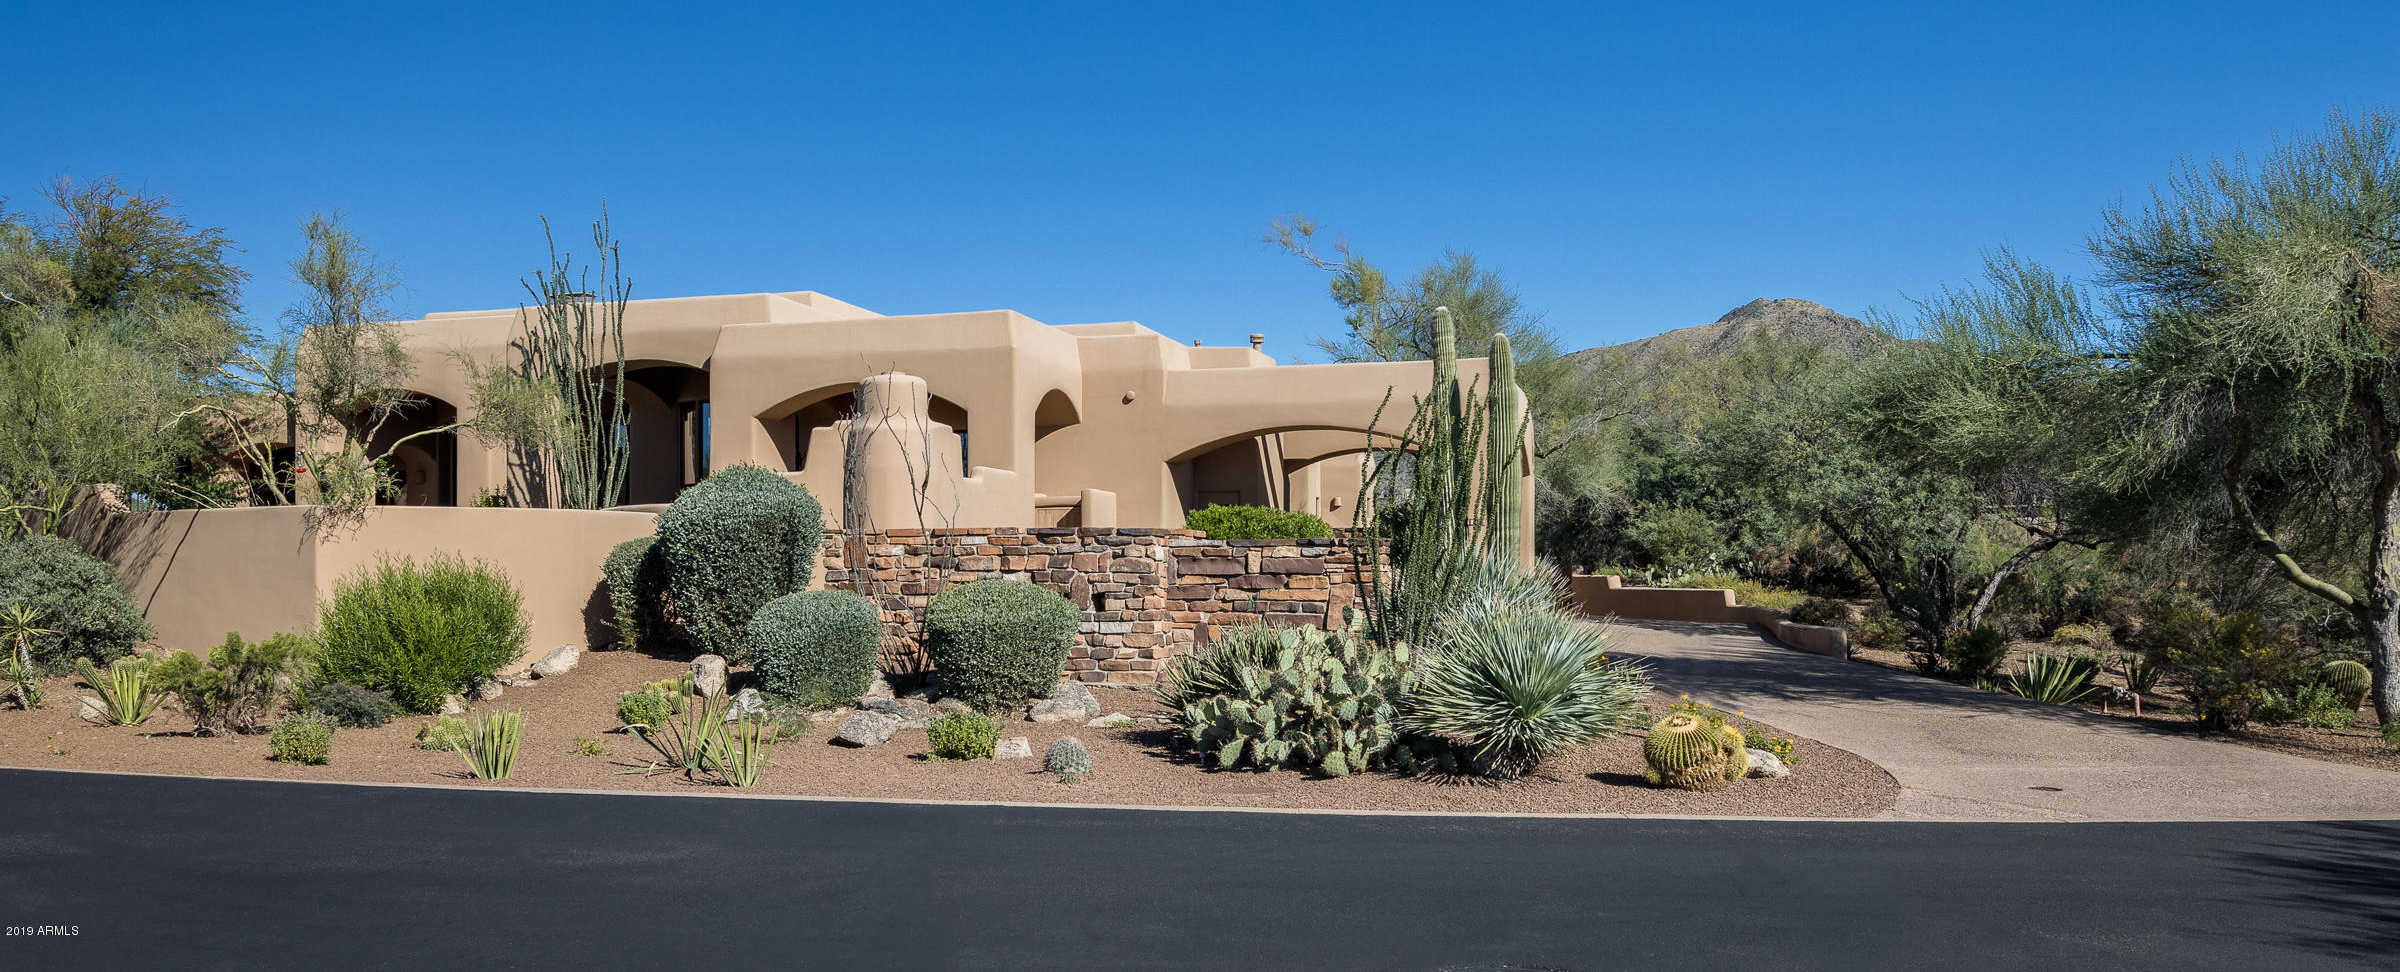 $1,295,000 - 3Br/3Ba - Home for Sale in Desert Mountain Phase 2 Unit 6 Lt 1-94 Tr A B, Scottsdale